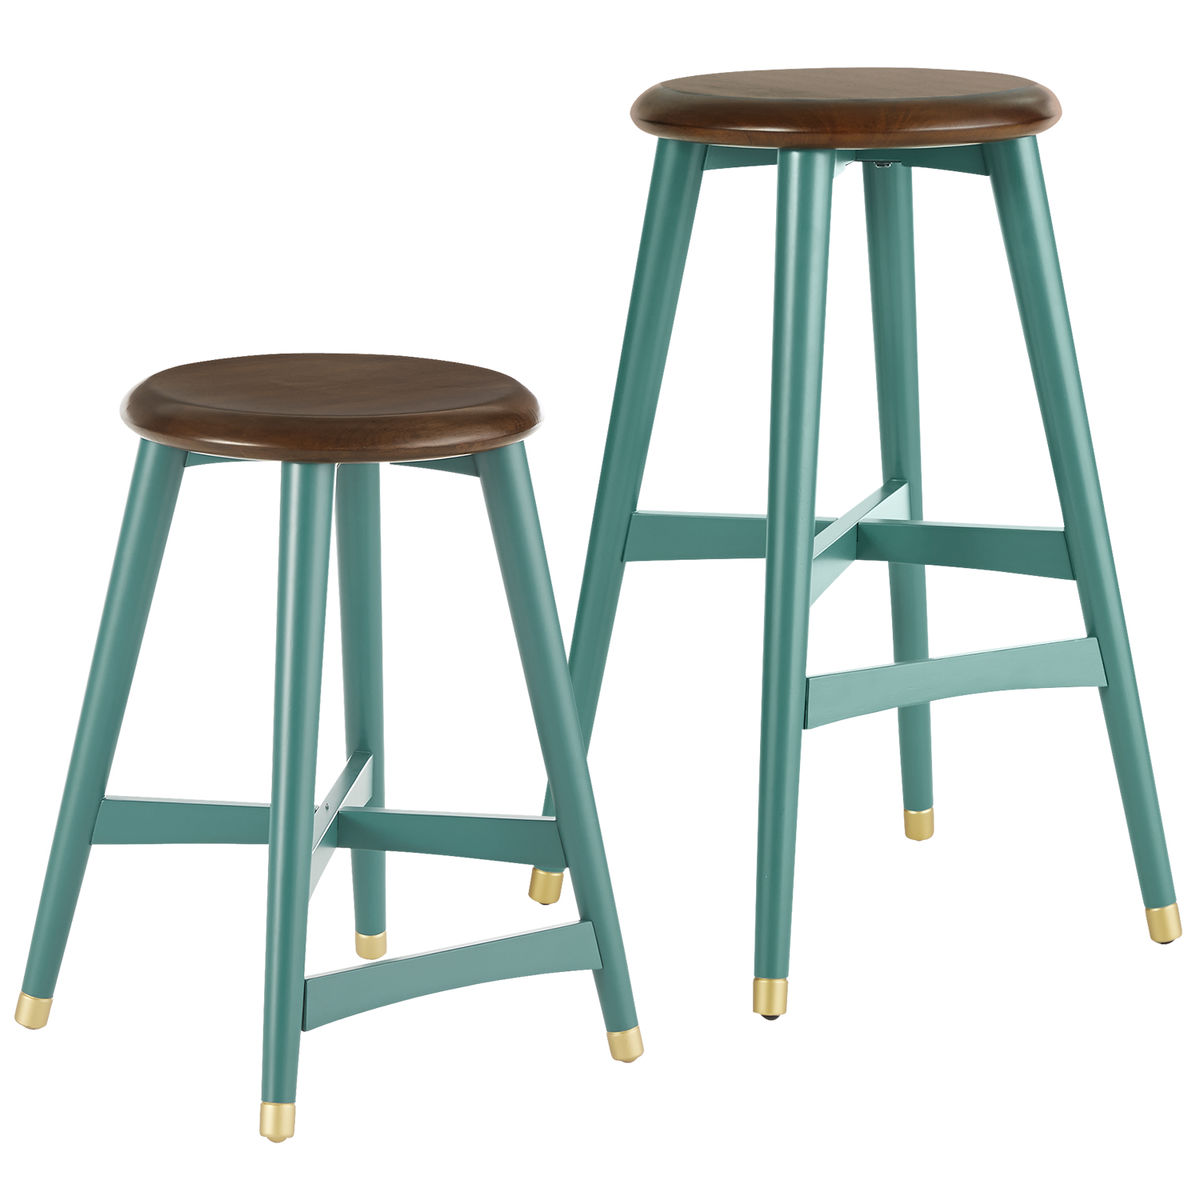 Turquoise Cooper Bar & Counter Stools